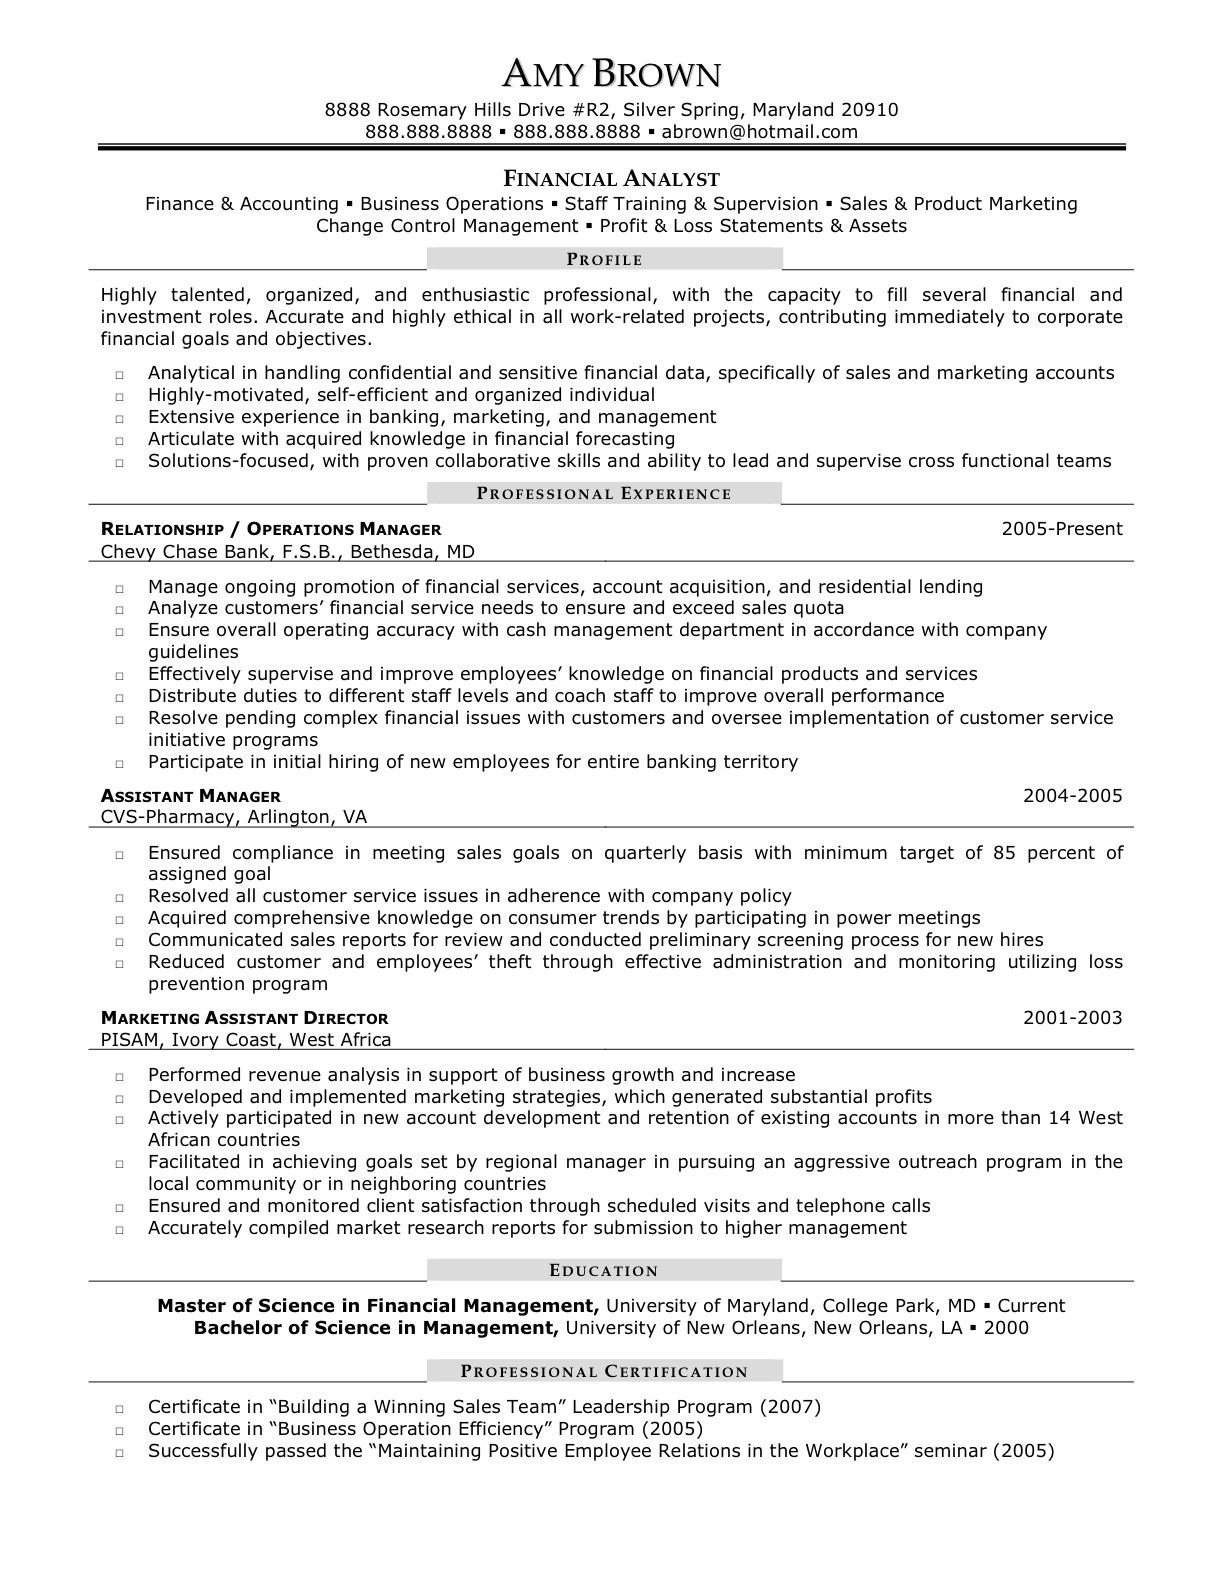 senior financial analyst resume